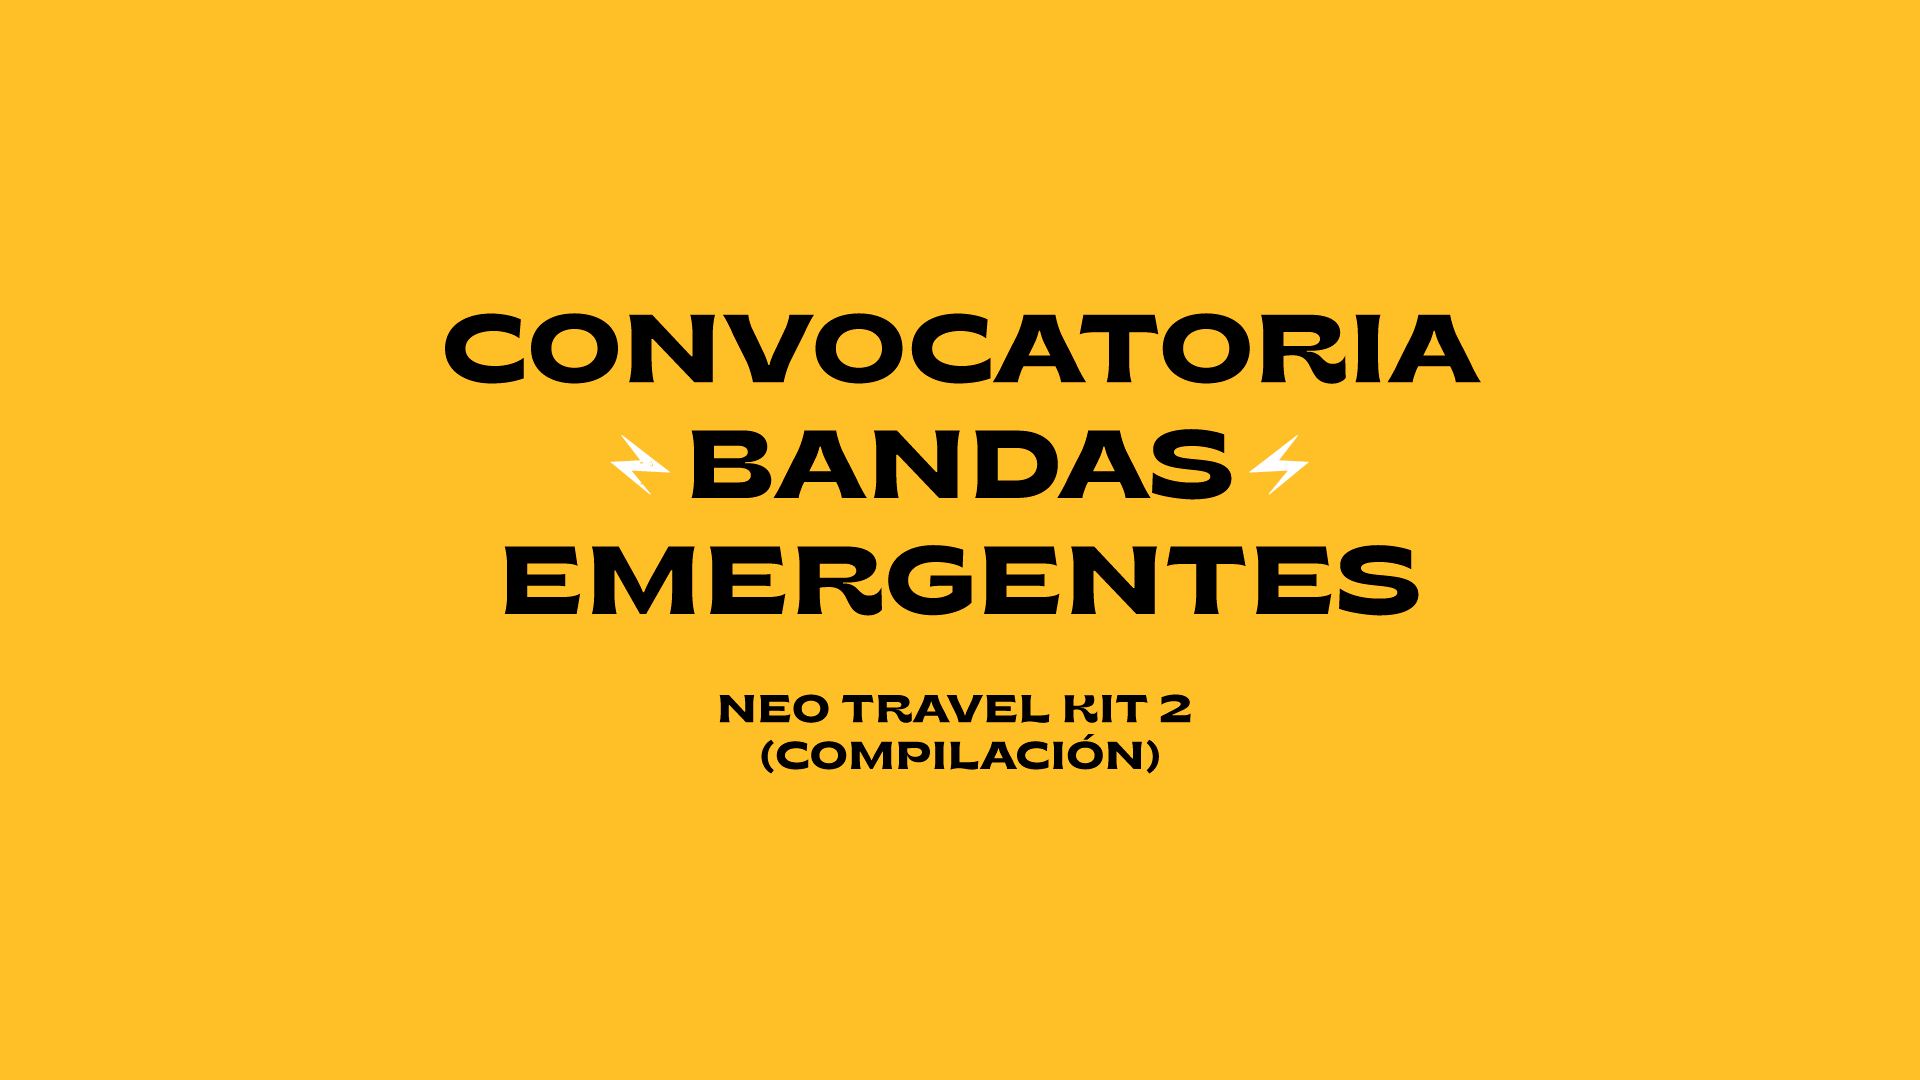 Convocatoria para bandas emergentes - Neo Travel Kit 2 - Directo Macondo